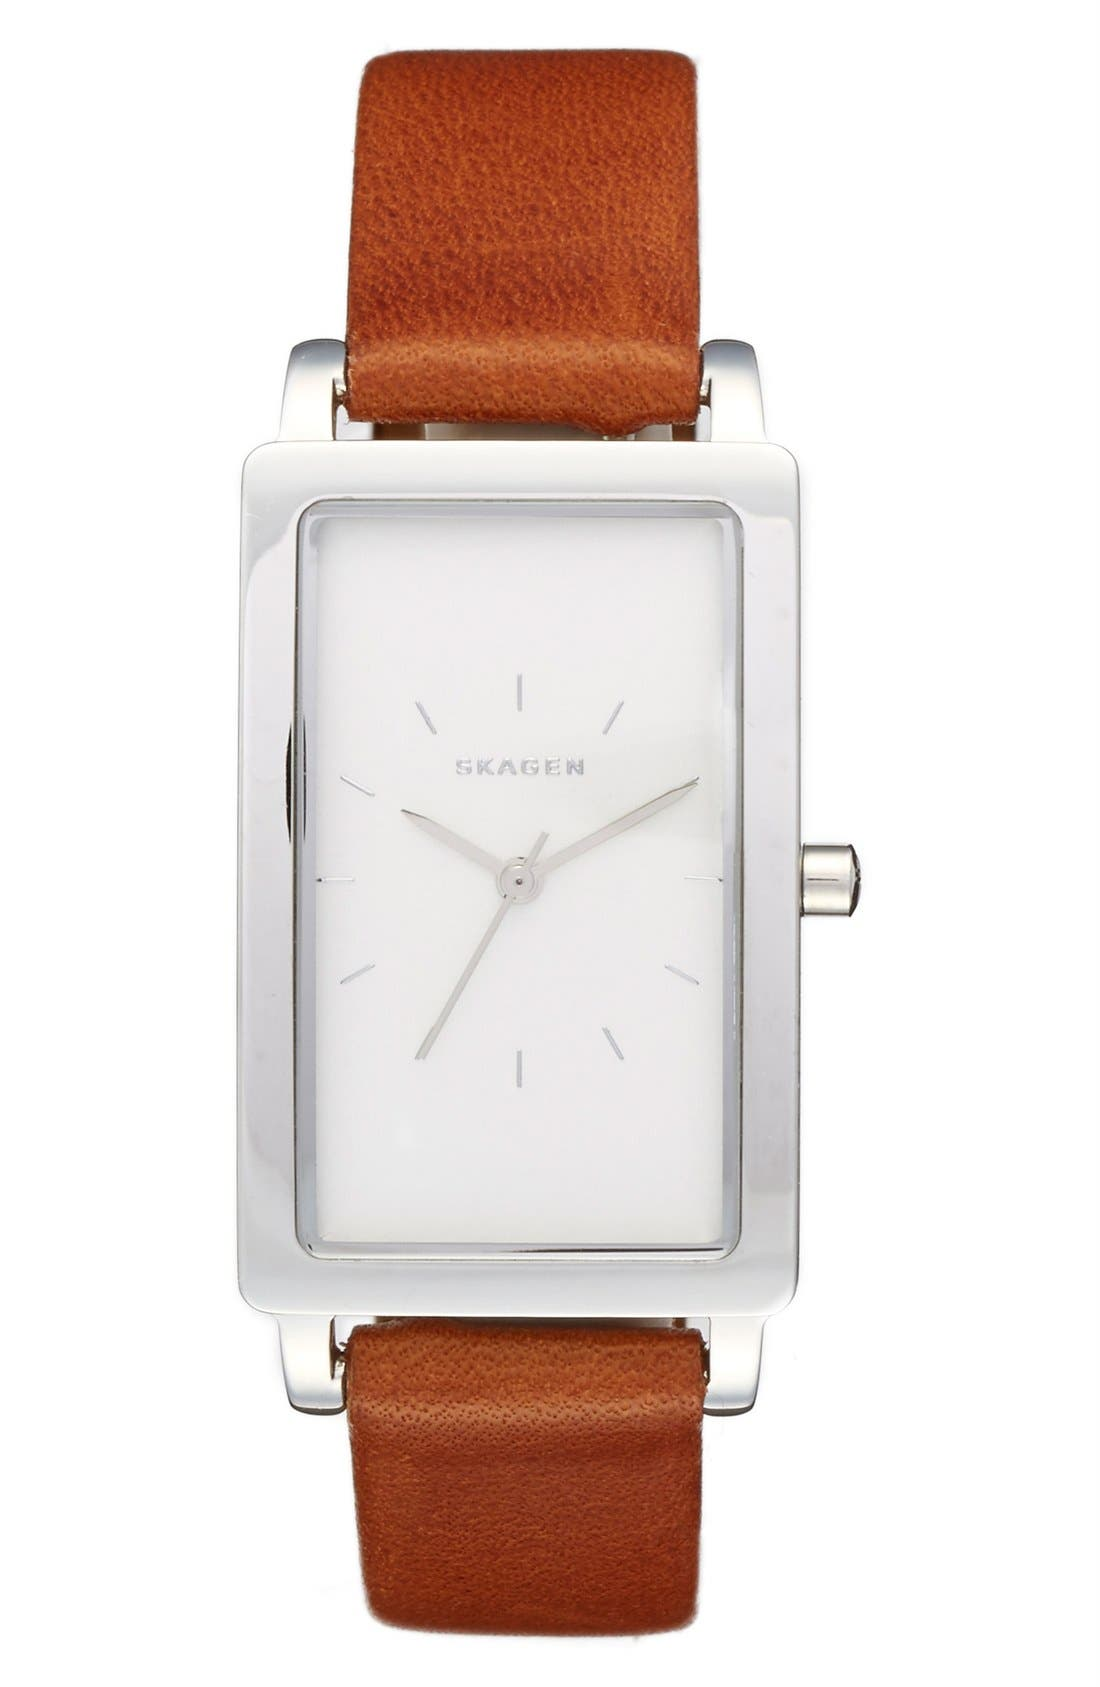 SKAGEN 'Hagen' Leather Strap Watch, 22mm x 43mm, Main, color, 200